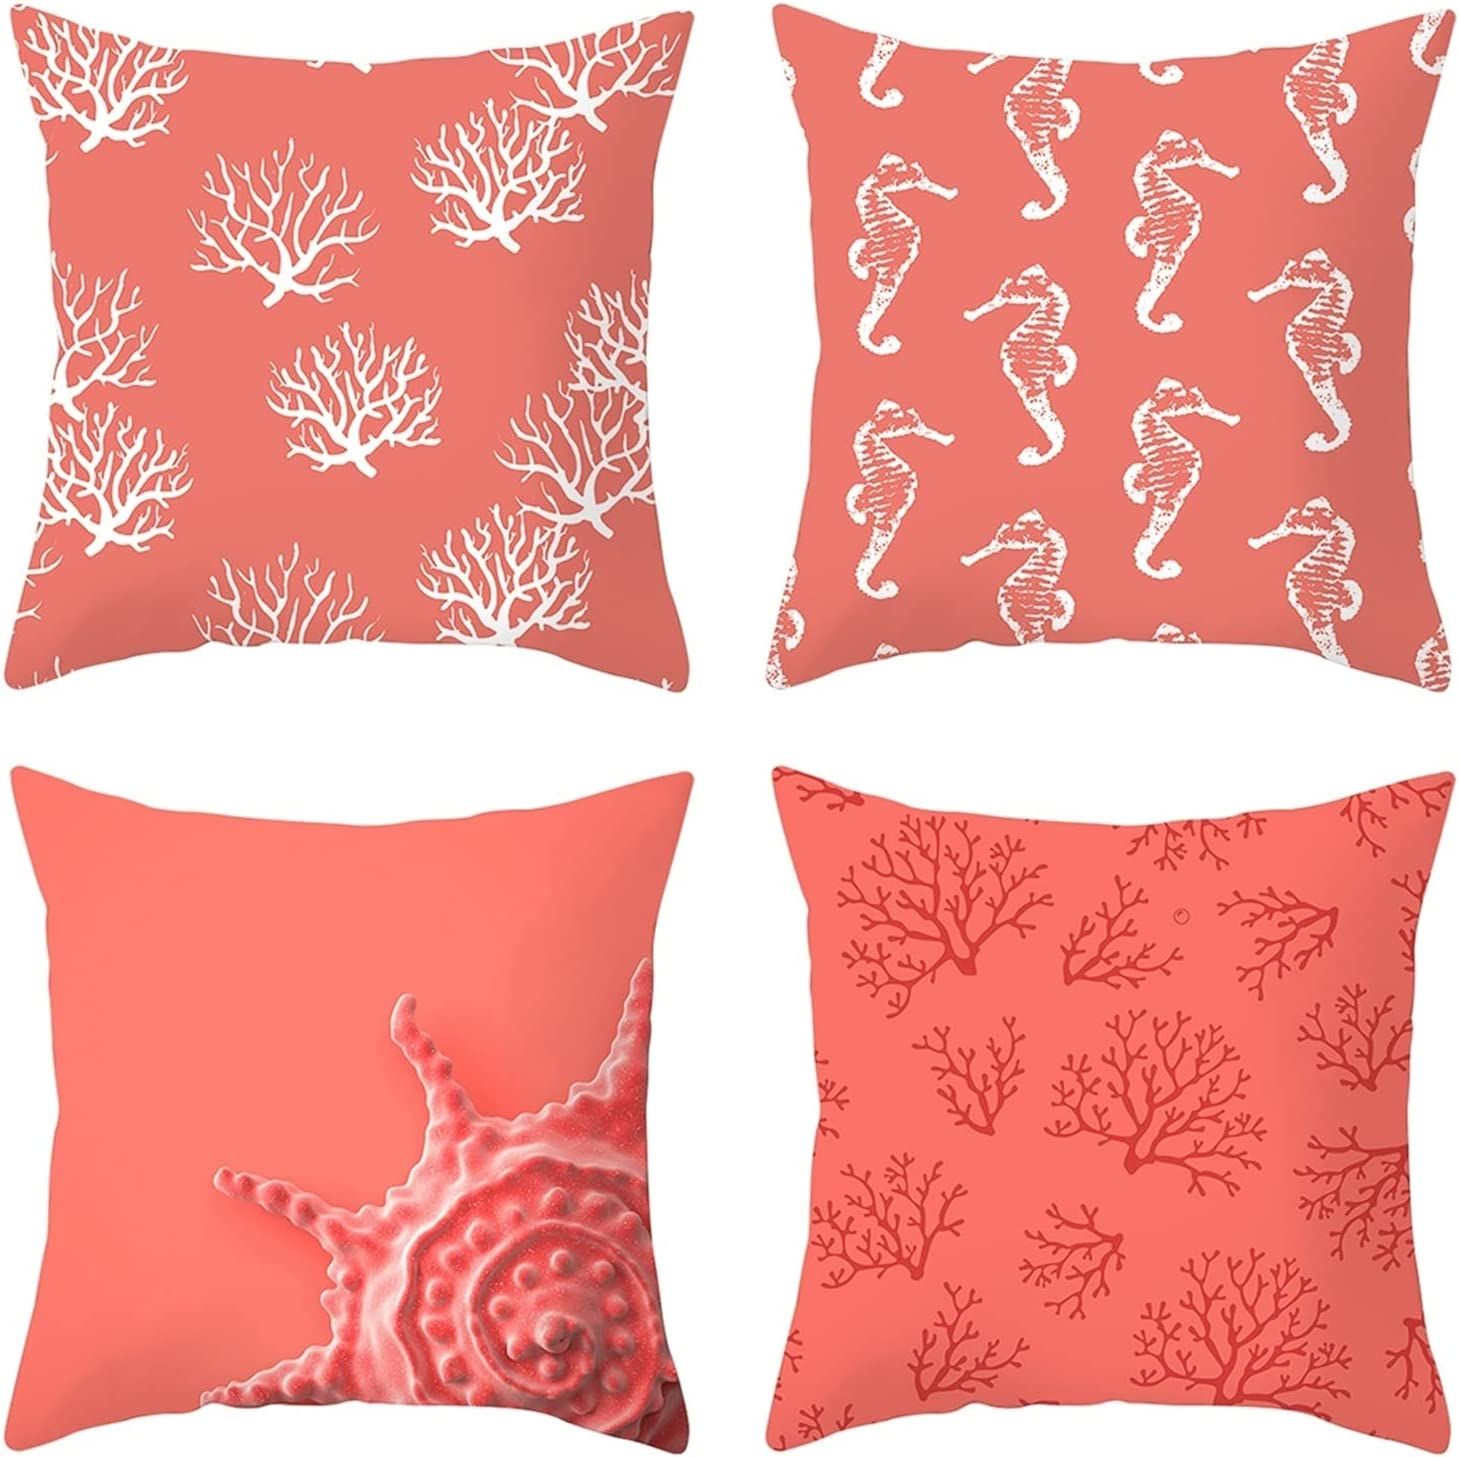 Daesar Decorative Pillow Cases 4 Cor Outdoor Covers Challenge Super sale period limited the lowest price Pack